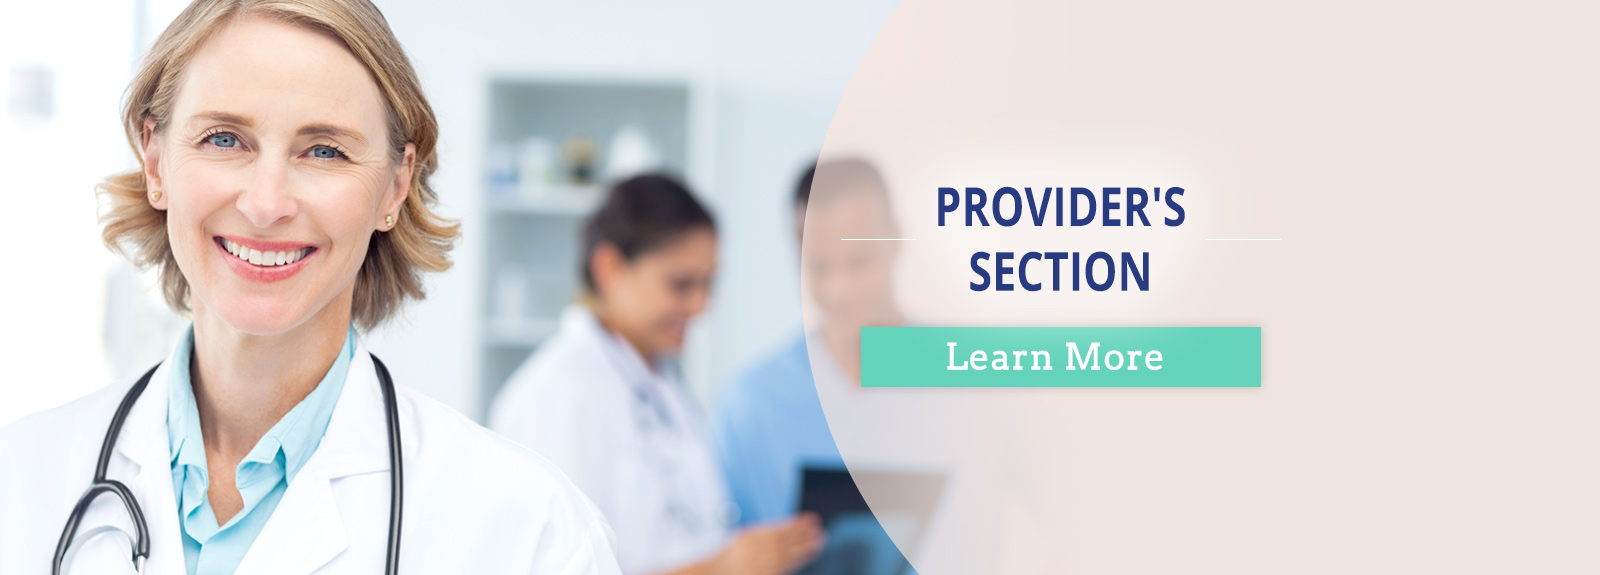 Providers's Section. Learn More.